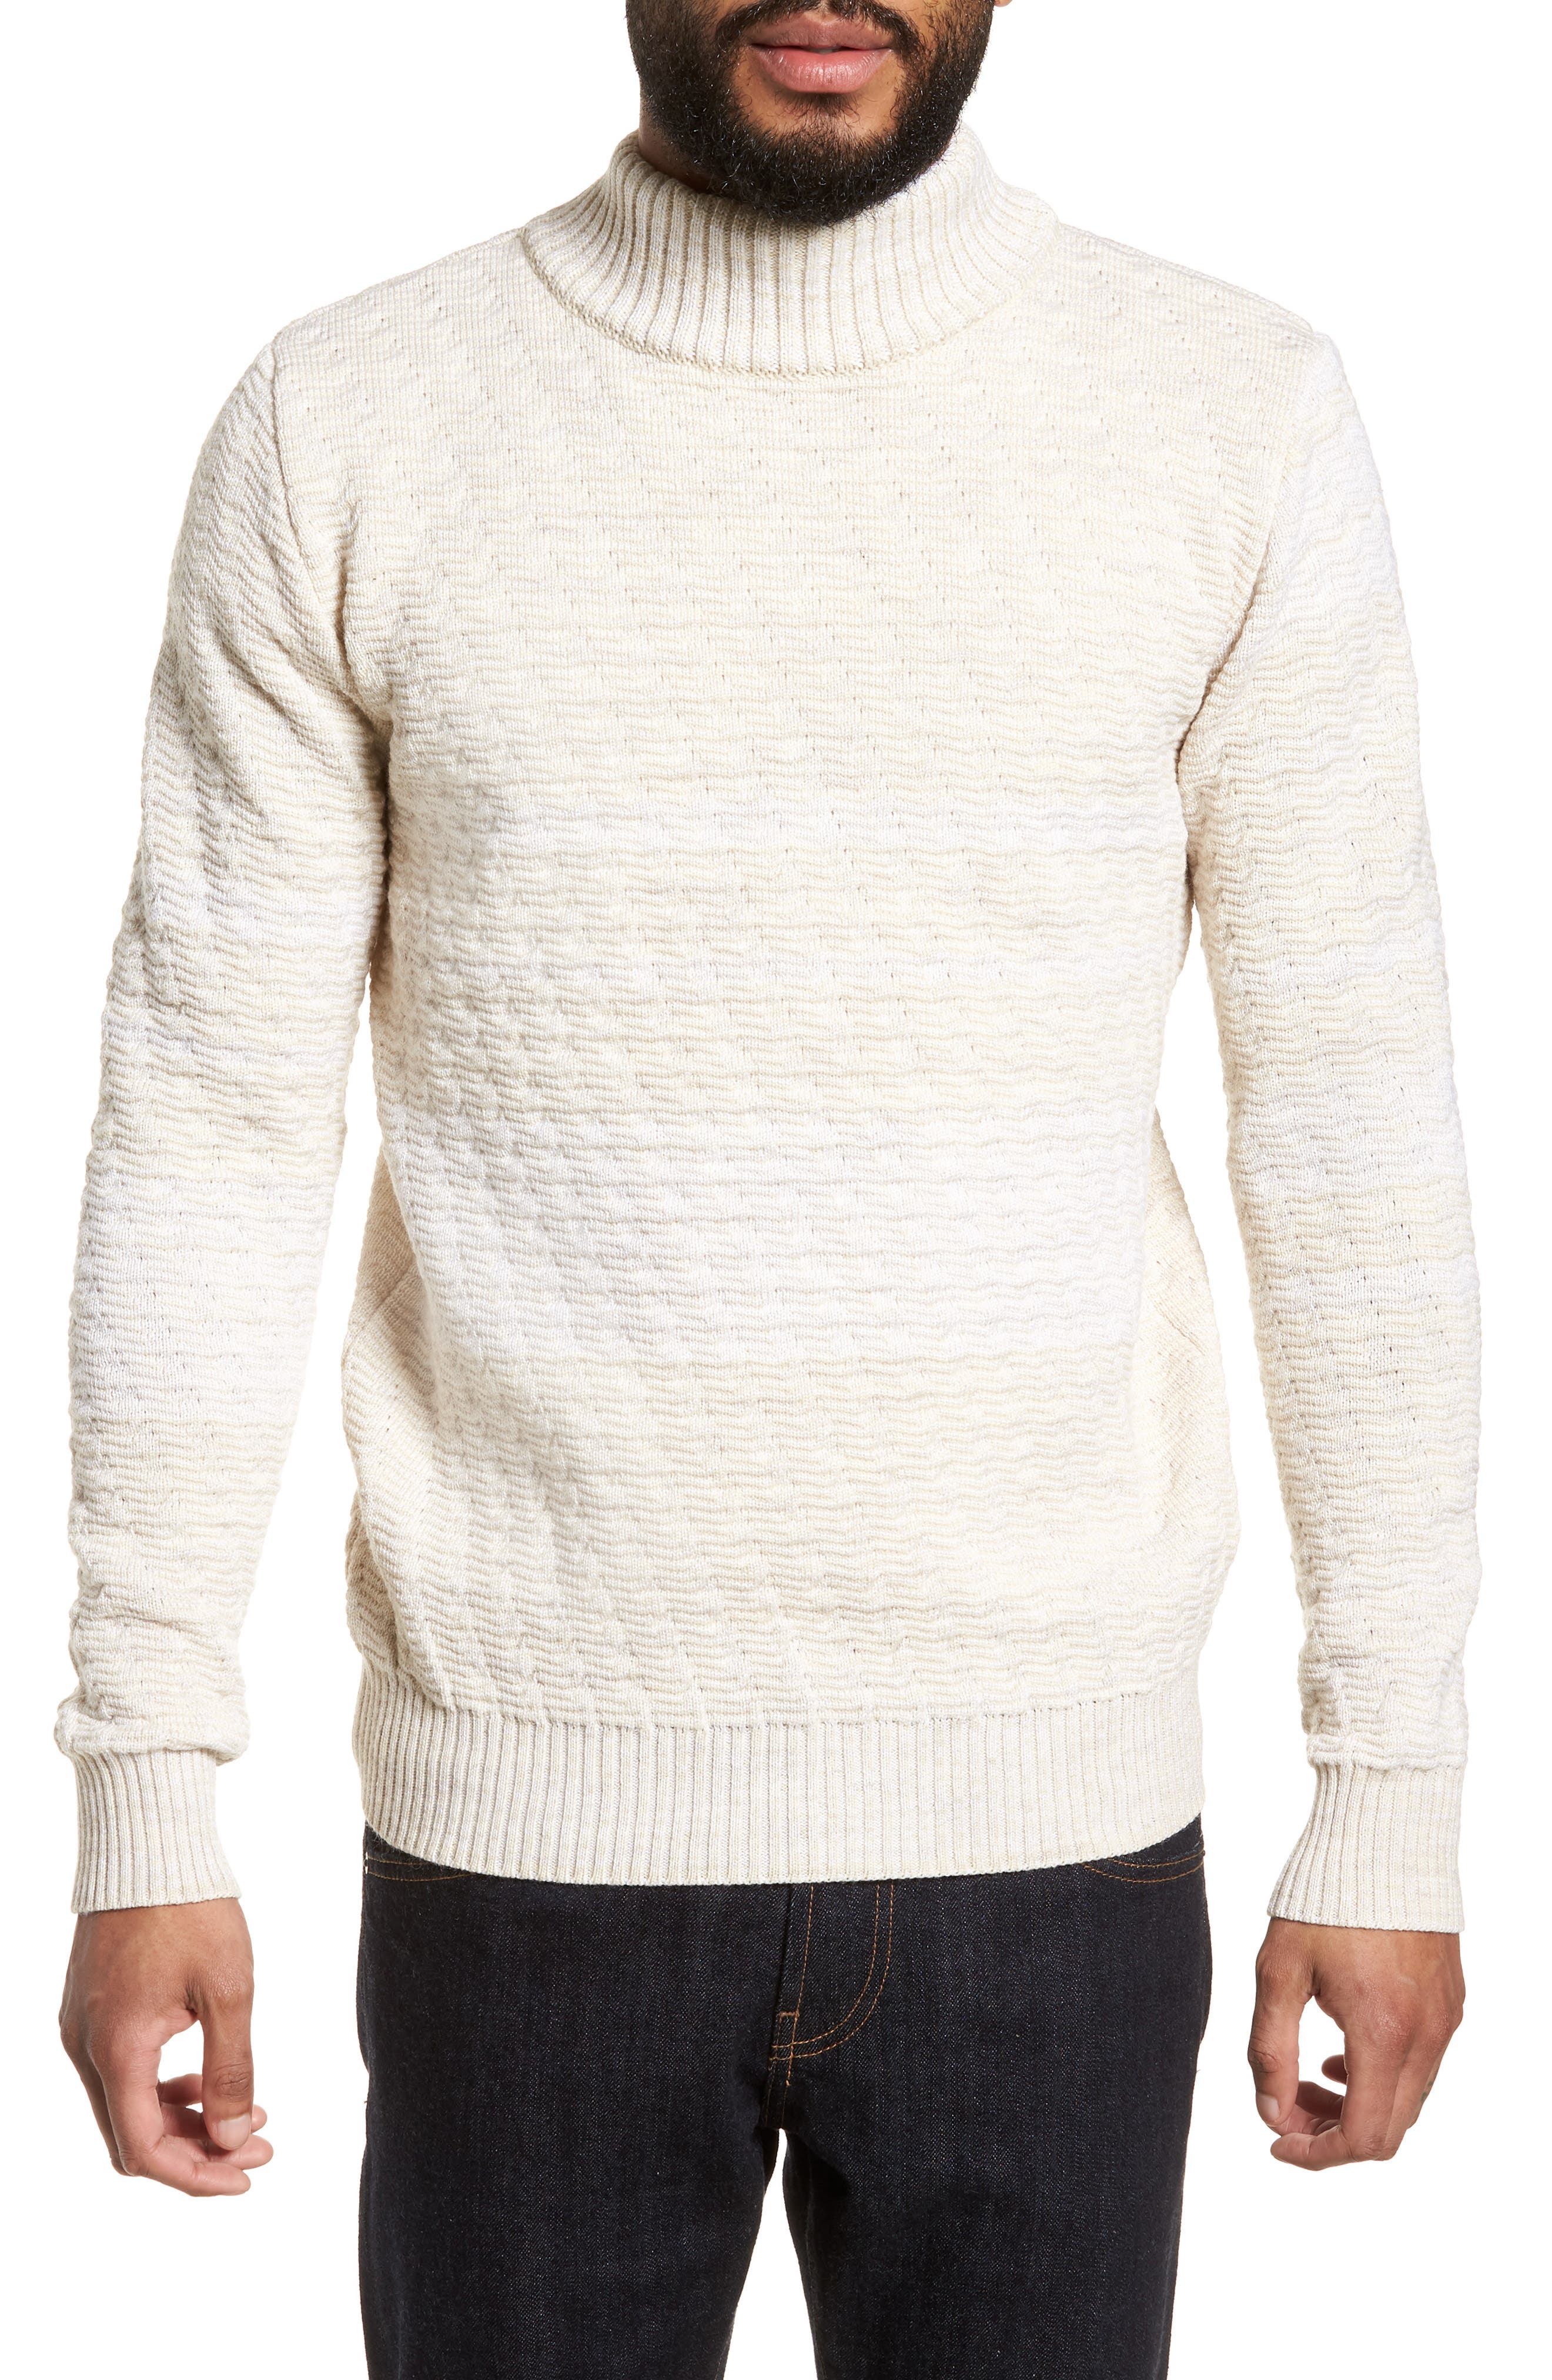 Evident Wool Turtleneck Sweater,                         Main,                         color, Raw